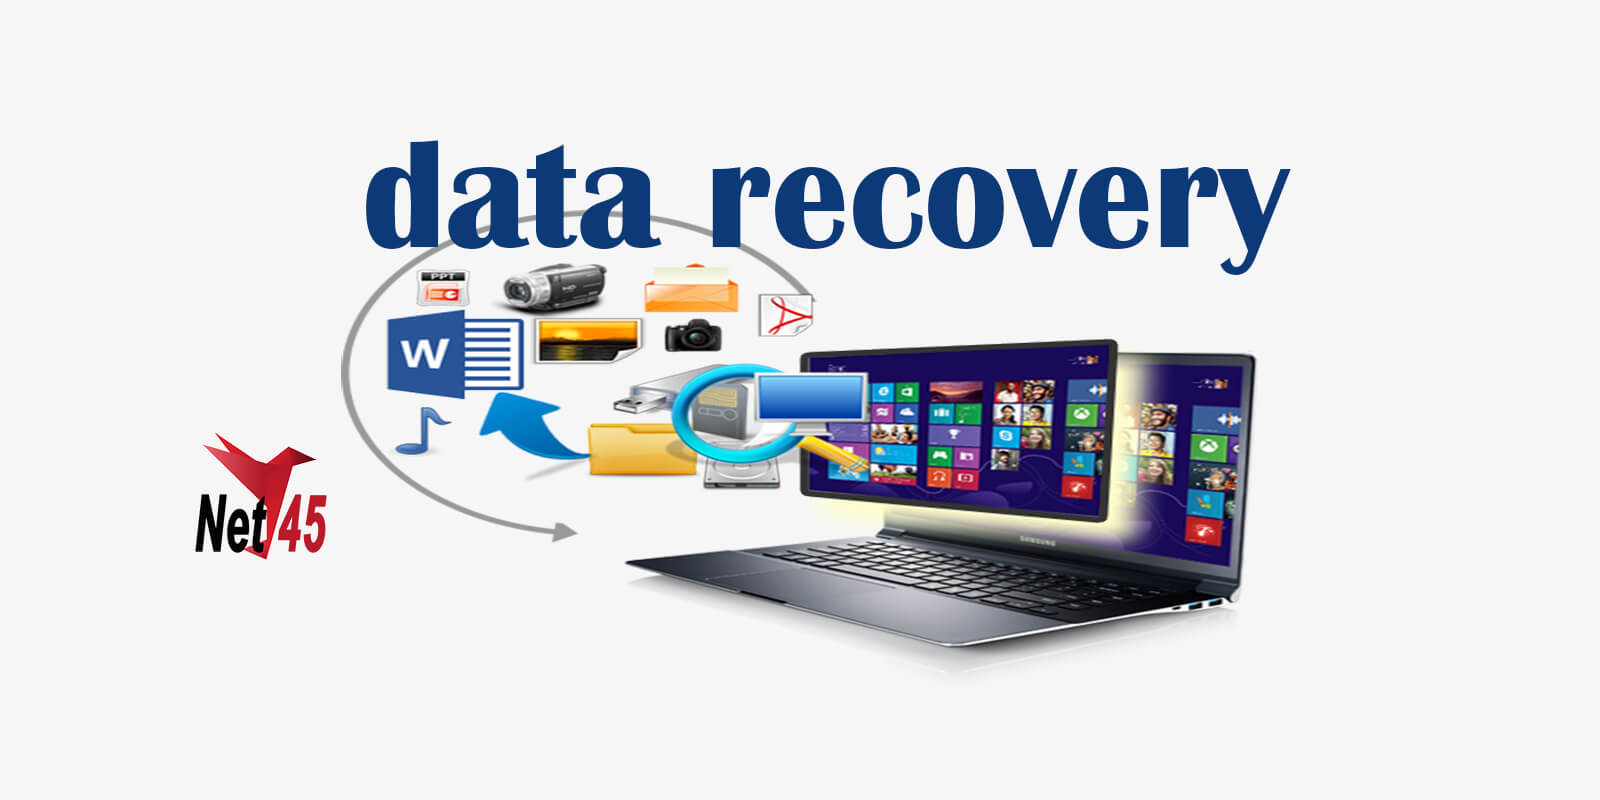 data recovery,recovery,data recovery software,recover data,data,android data recovery,easeus data recovery wizard,free data recovery software,recover,data recovery wizard,best data recovery software,data recovery software for pc,data loss,recover photos,mac data recovery,acs data recovery,$300 data recovery,data recovery flash,data recovery for pc,data recovery tools,android recovery,data recovery review